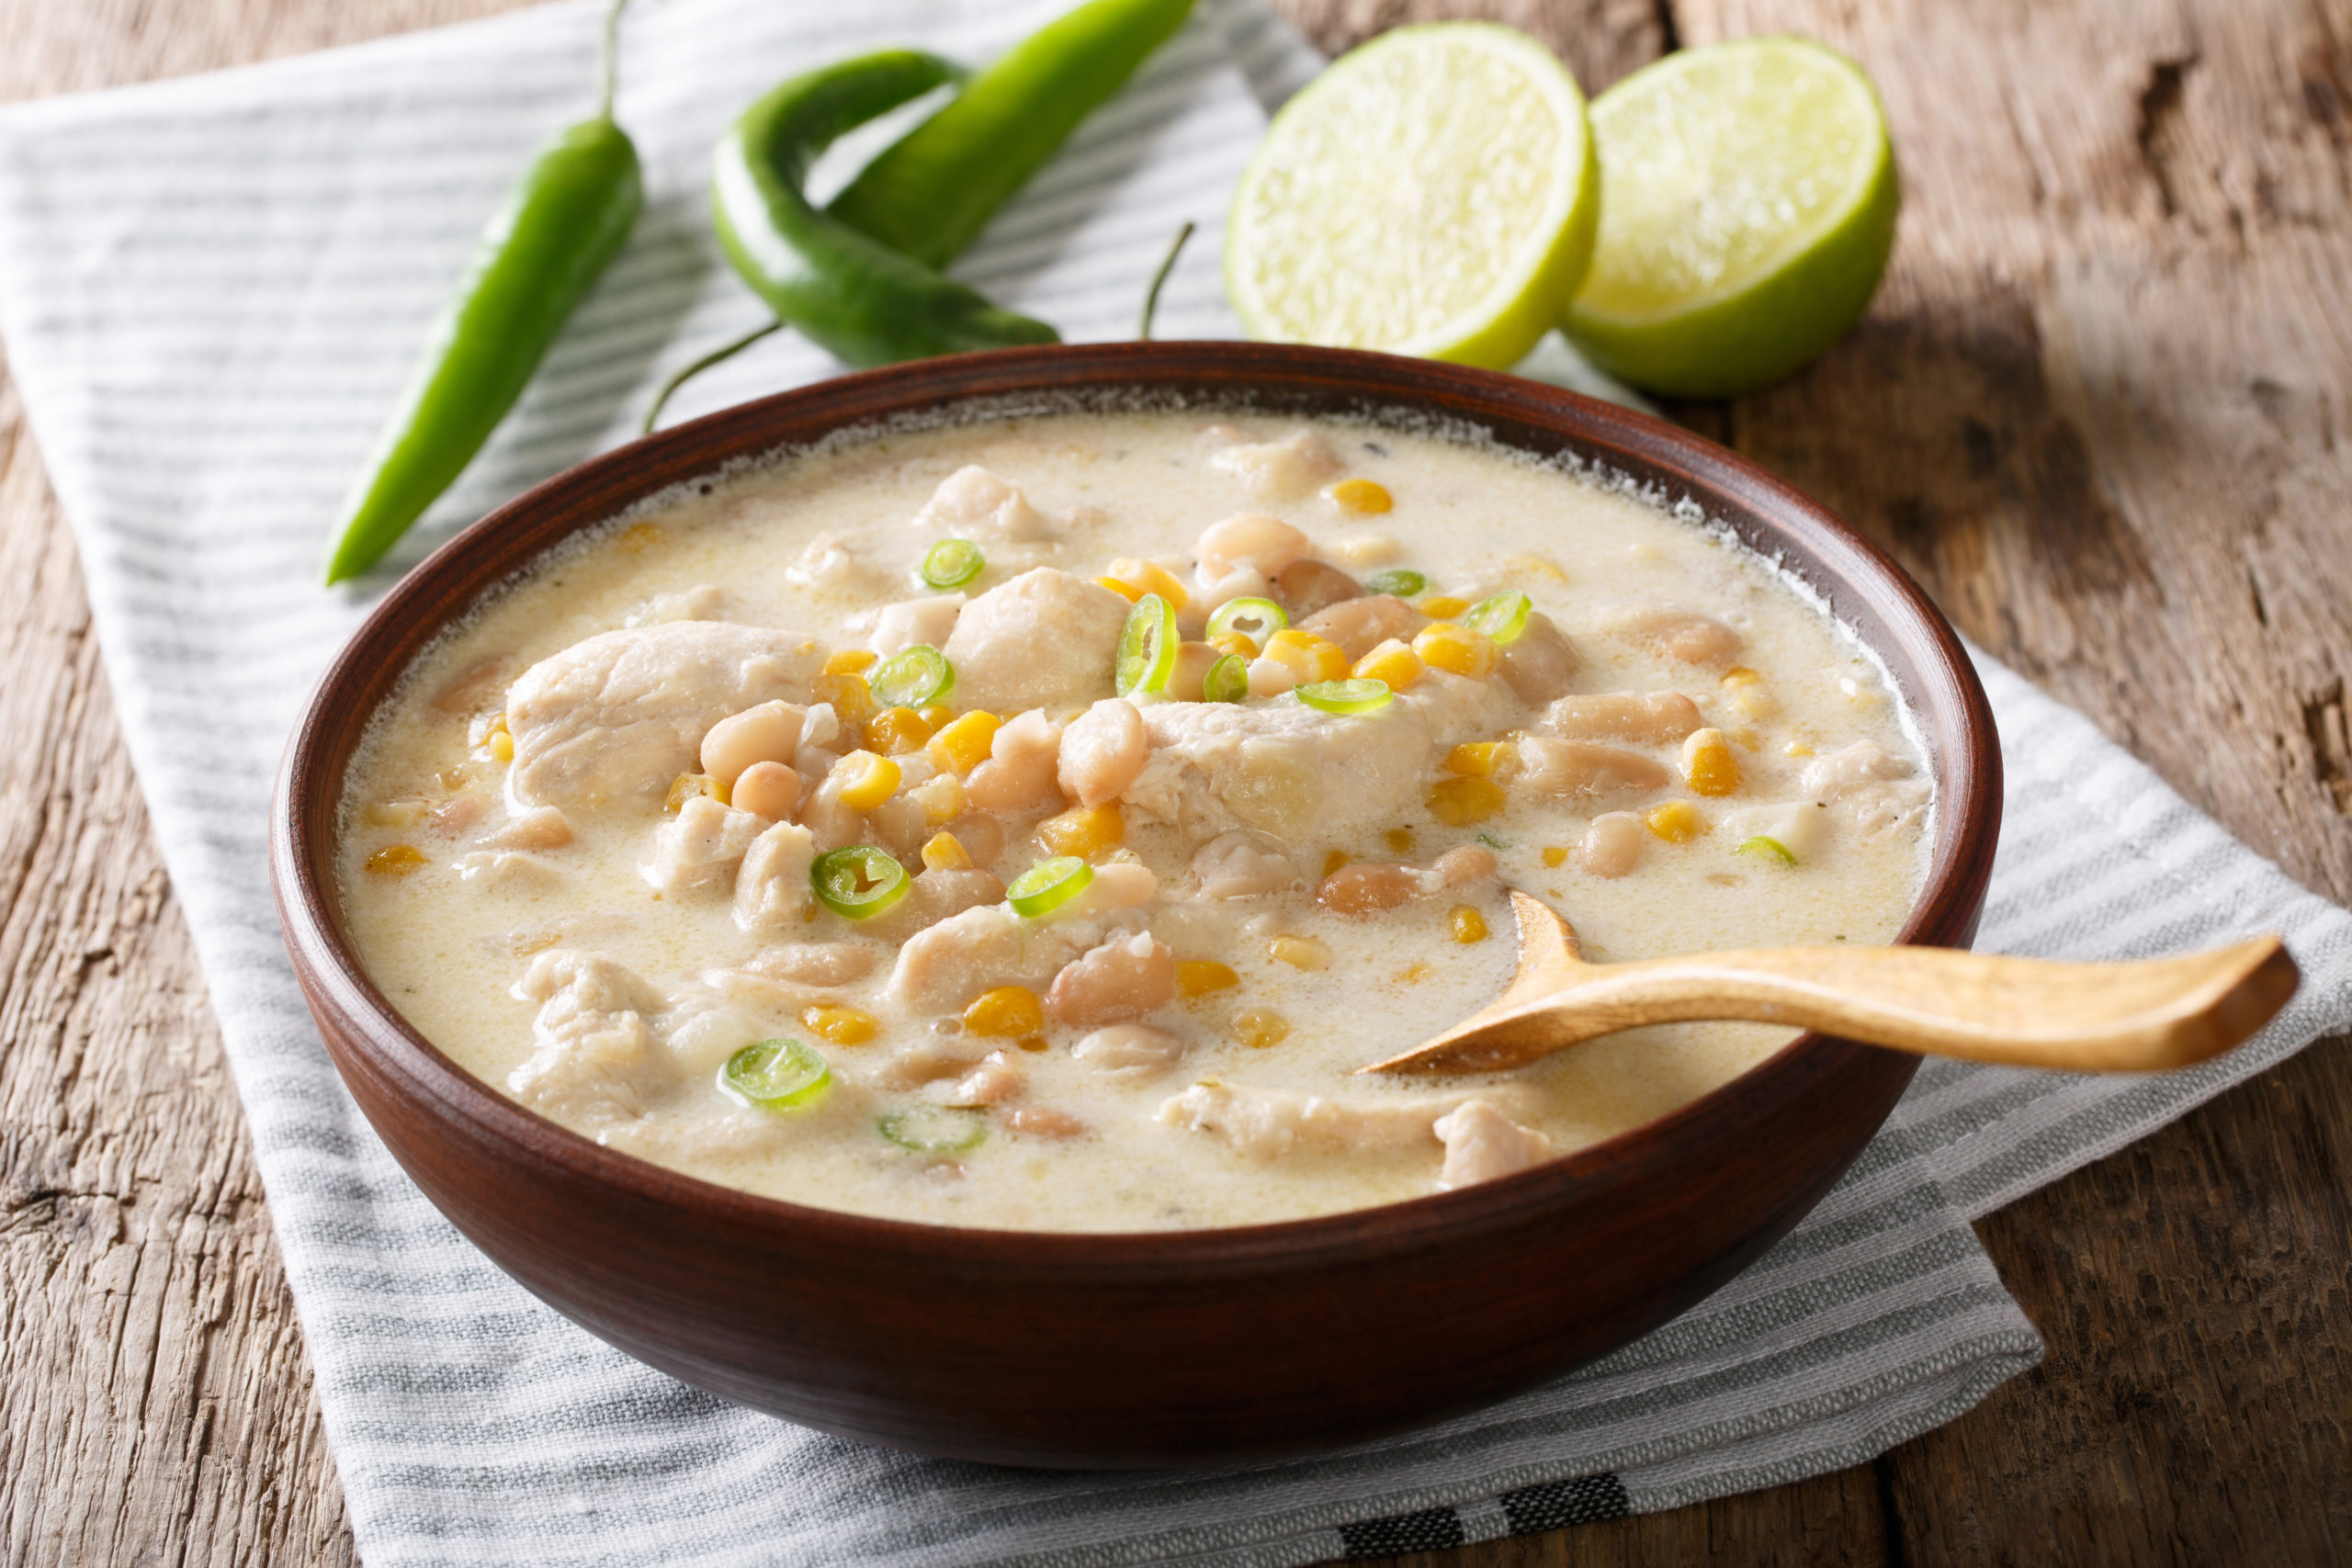 Homemade white chili chicken with beans, lime and corn close-up on the table